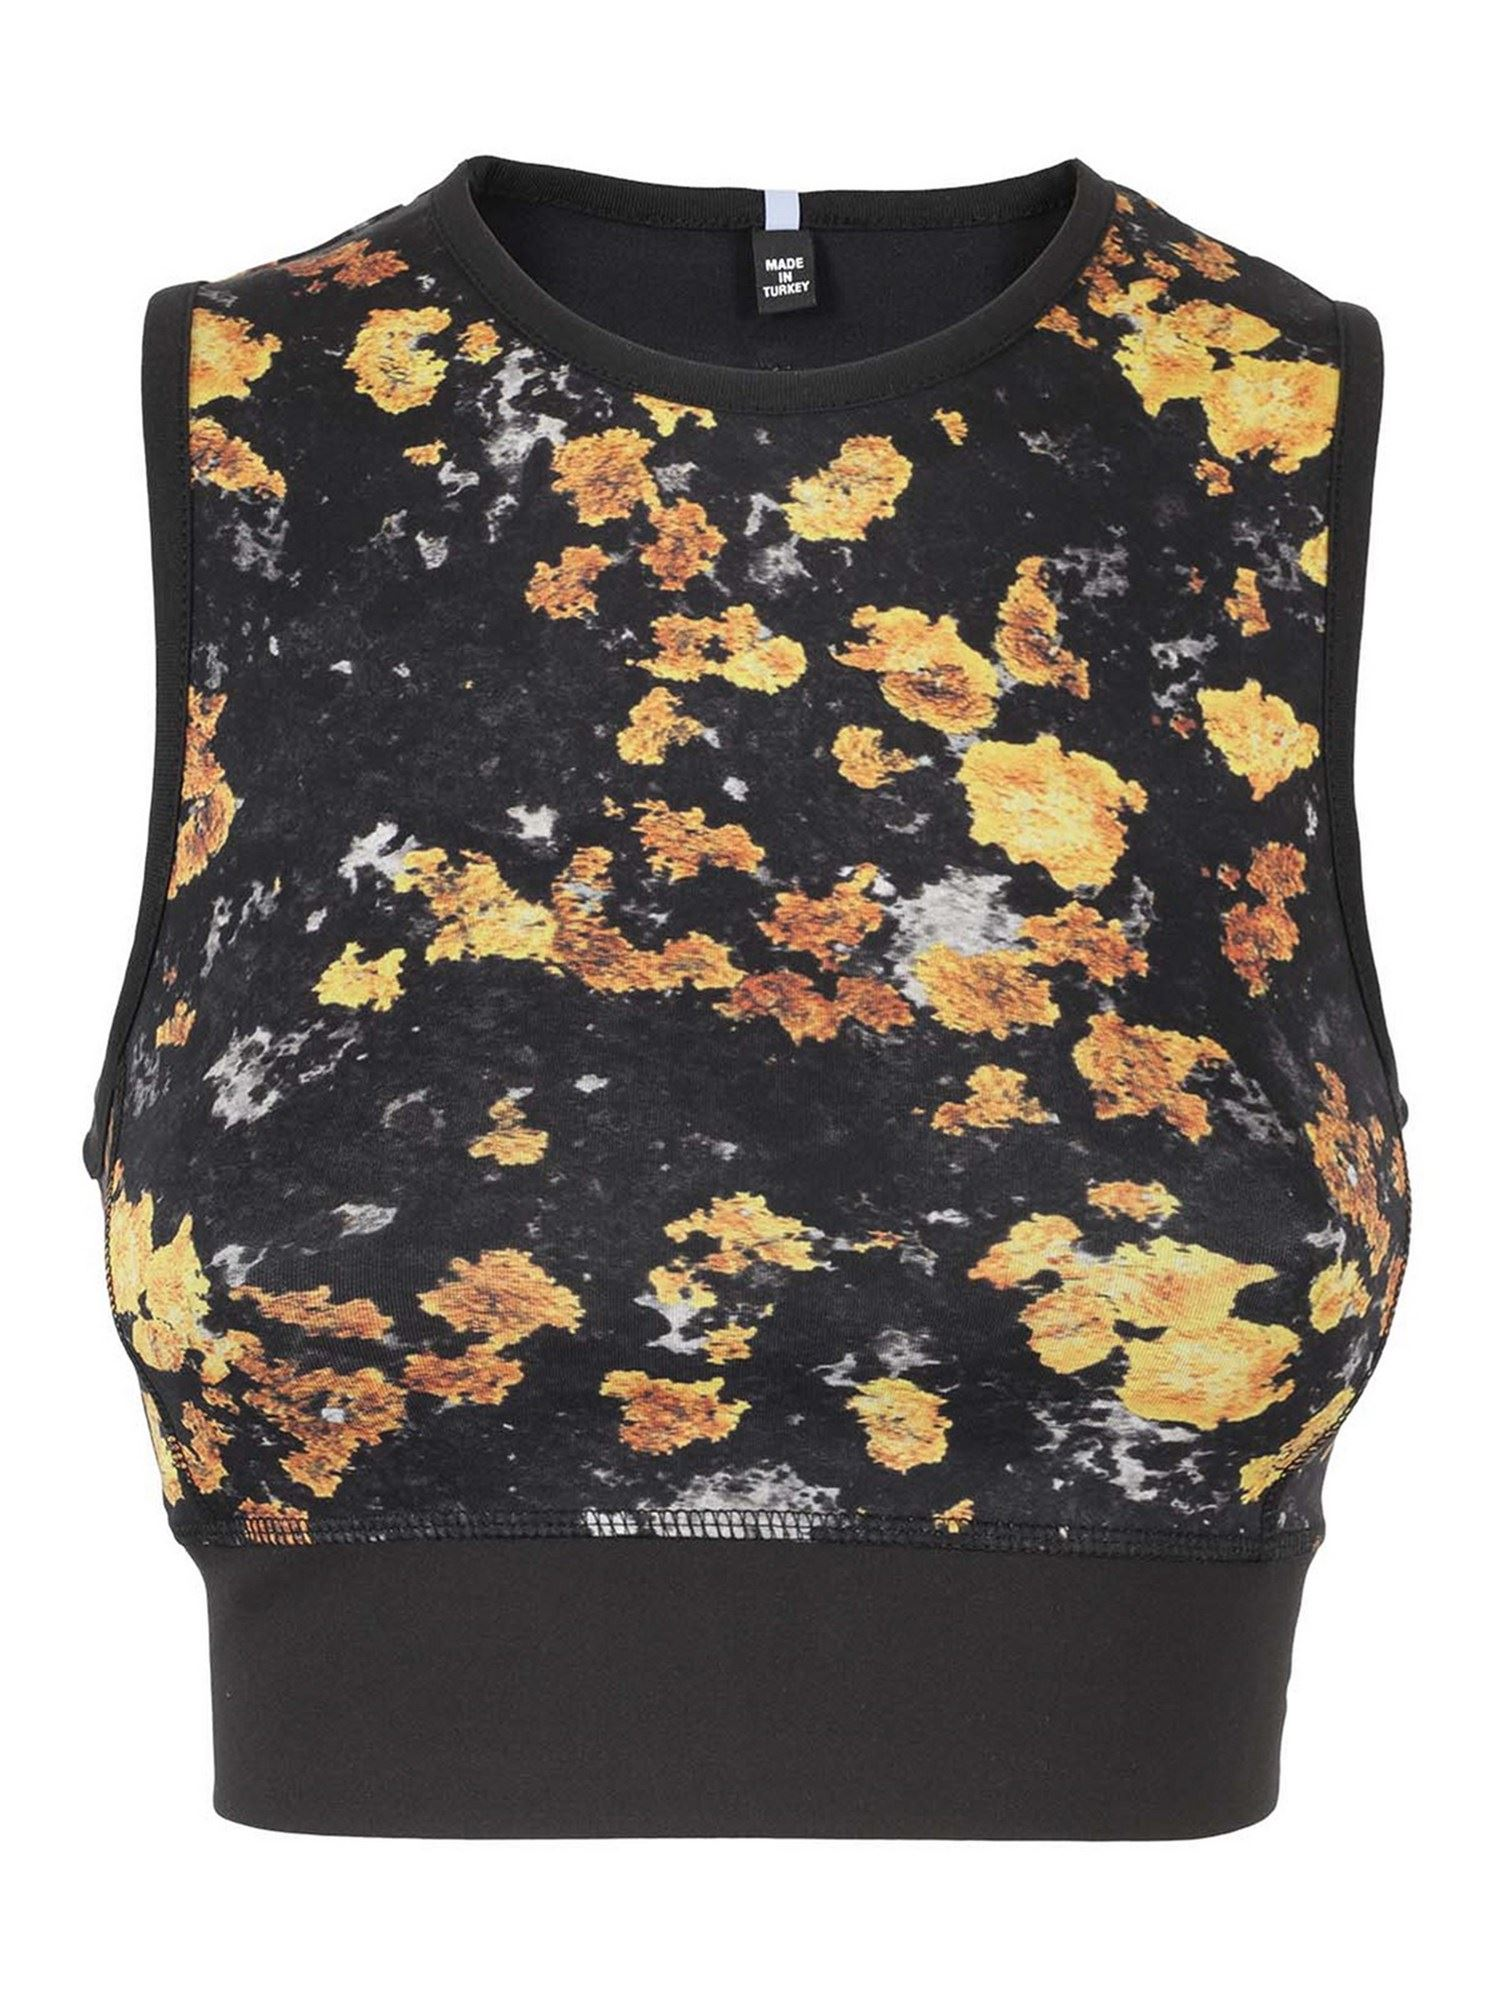 Mcq By Alexander Mcqueen Tops FLORAL PRINT CROPPED TOP IN BLACK